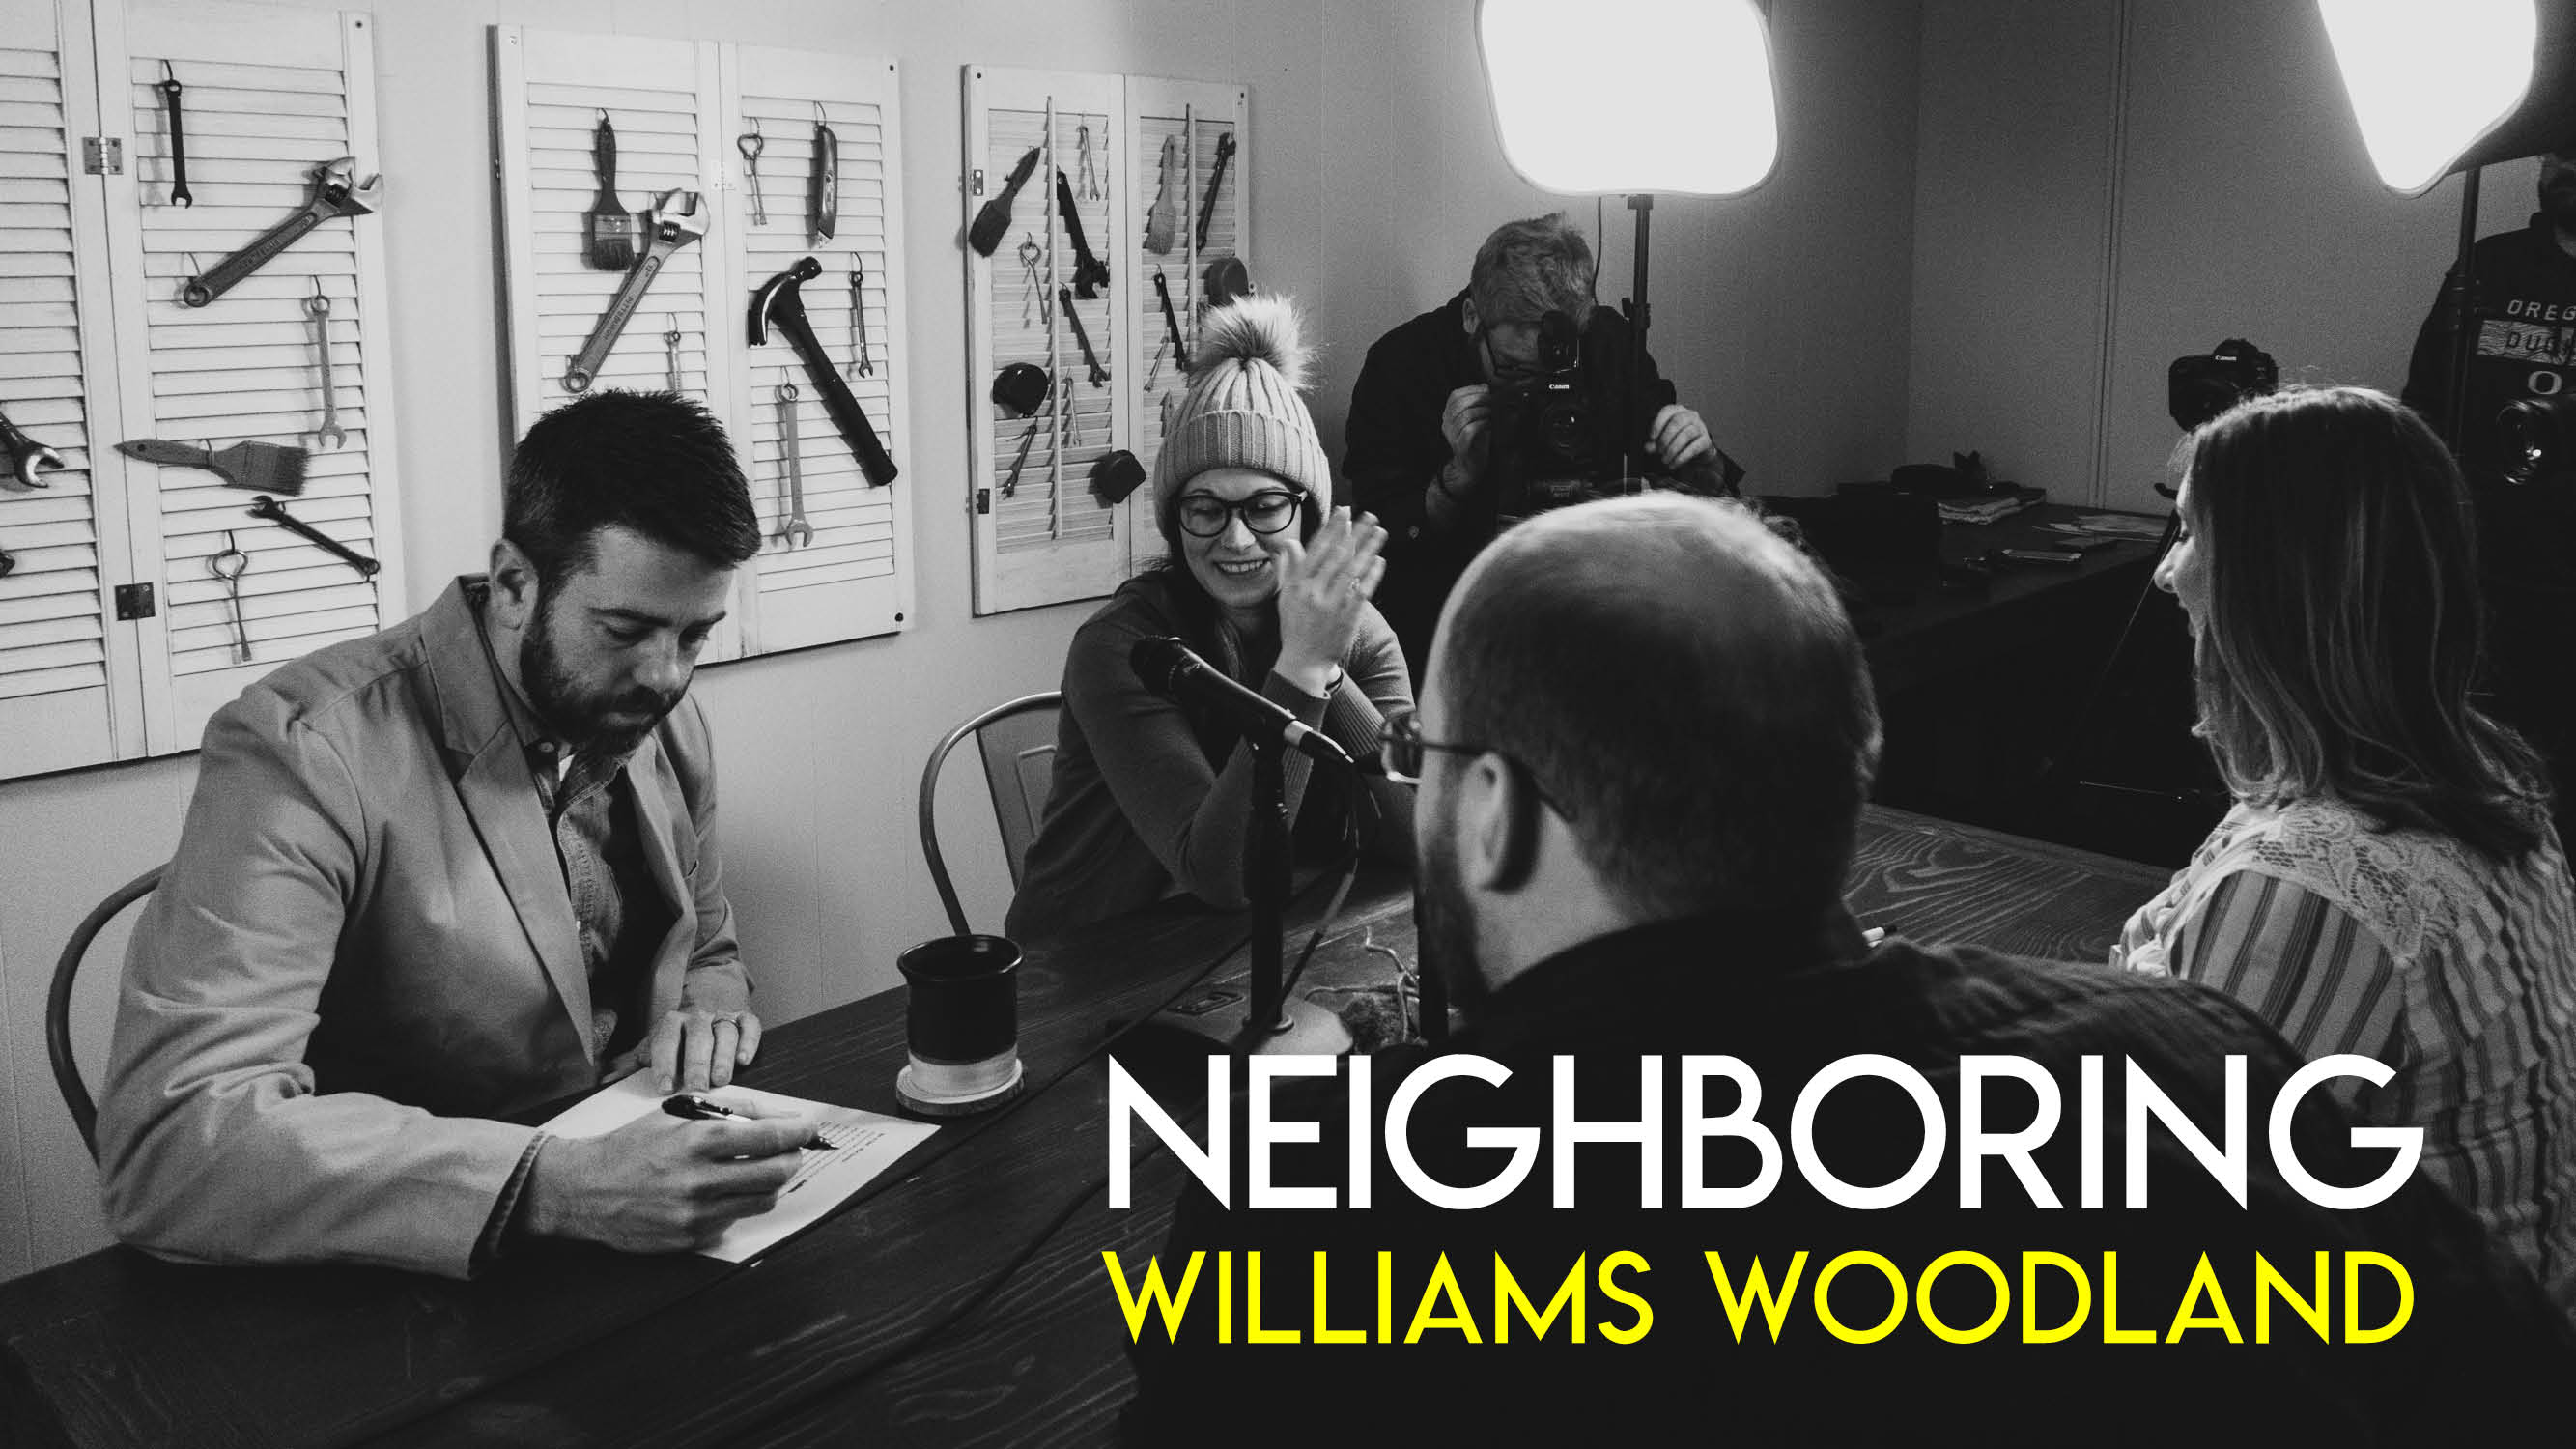 Williams Woodland Park Neighborhood - Part 2 of Healthy Neighborhoods Series